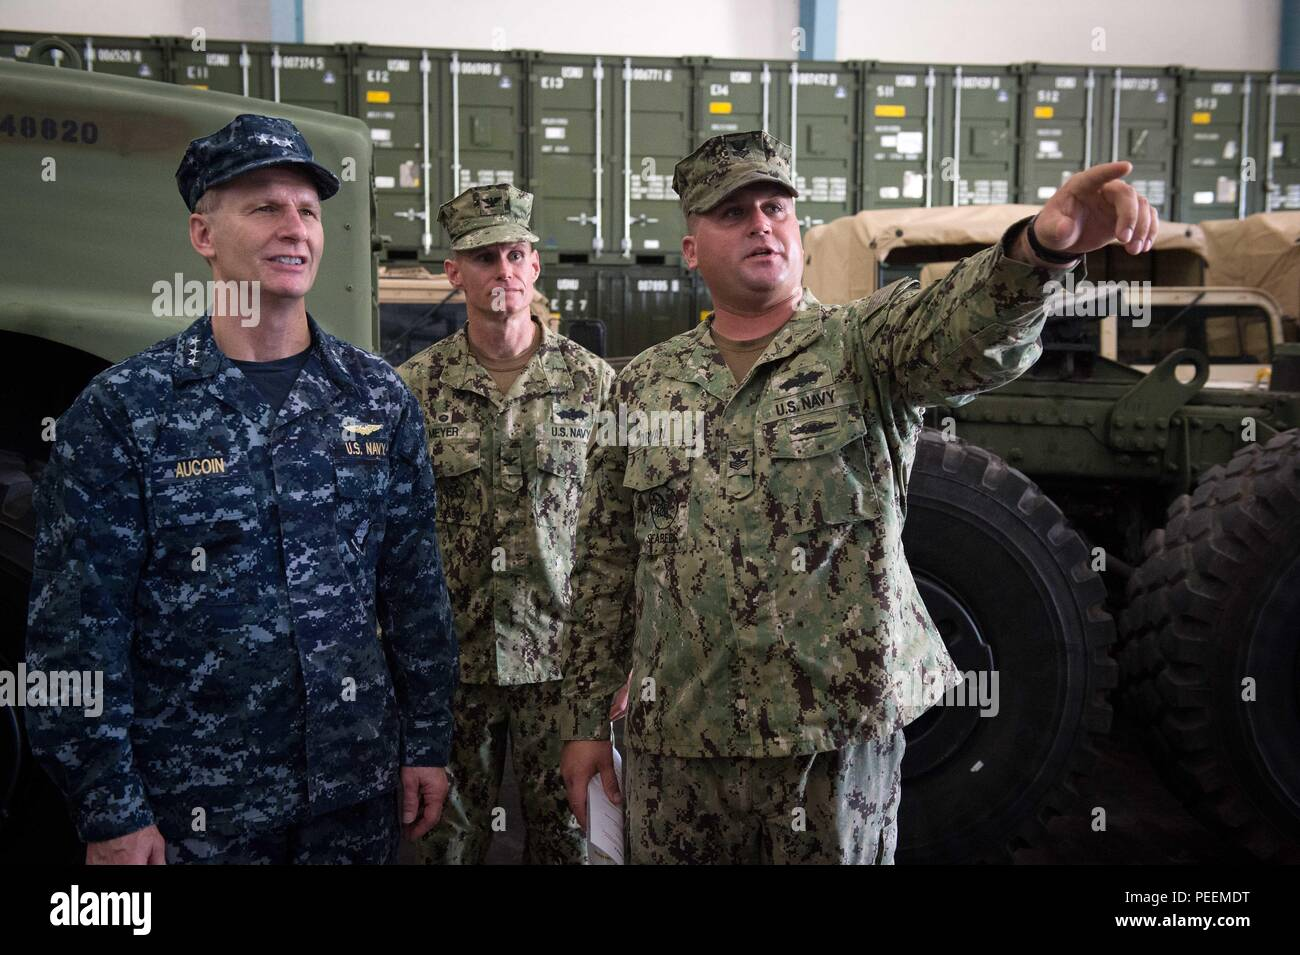 Construction Mechanic 1st Class Garrett Oryan (Right), assigned to Naval Mobile Construction Battalion (NMCB) 1, briefs Vice Adm. Joseph P. Aucoin, Commander, U.S. Seventh Fleet, and Capt. James G. Meyer, Commodore, 30th Naval Construction Regiment (NCR), on NMCB 1 civil engineer support equipment (CESE) capabilities at Naval Base Guam, Jan. 22, 2016. NMCB 1 provides expeditionary construction and engineering (combat service support) to include horizontal and vertical construction; maintenance and operation of expeditionary bases and facilities; tactical sustainment bridging, Humanitarian Assi - Stock Image